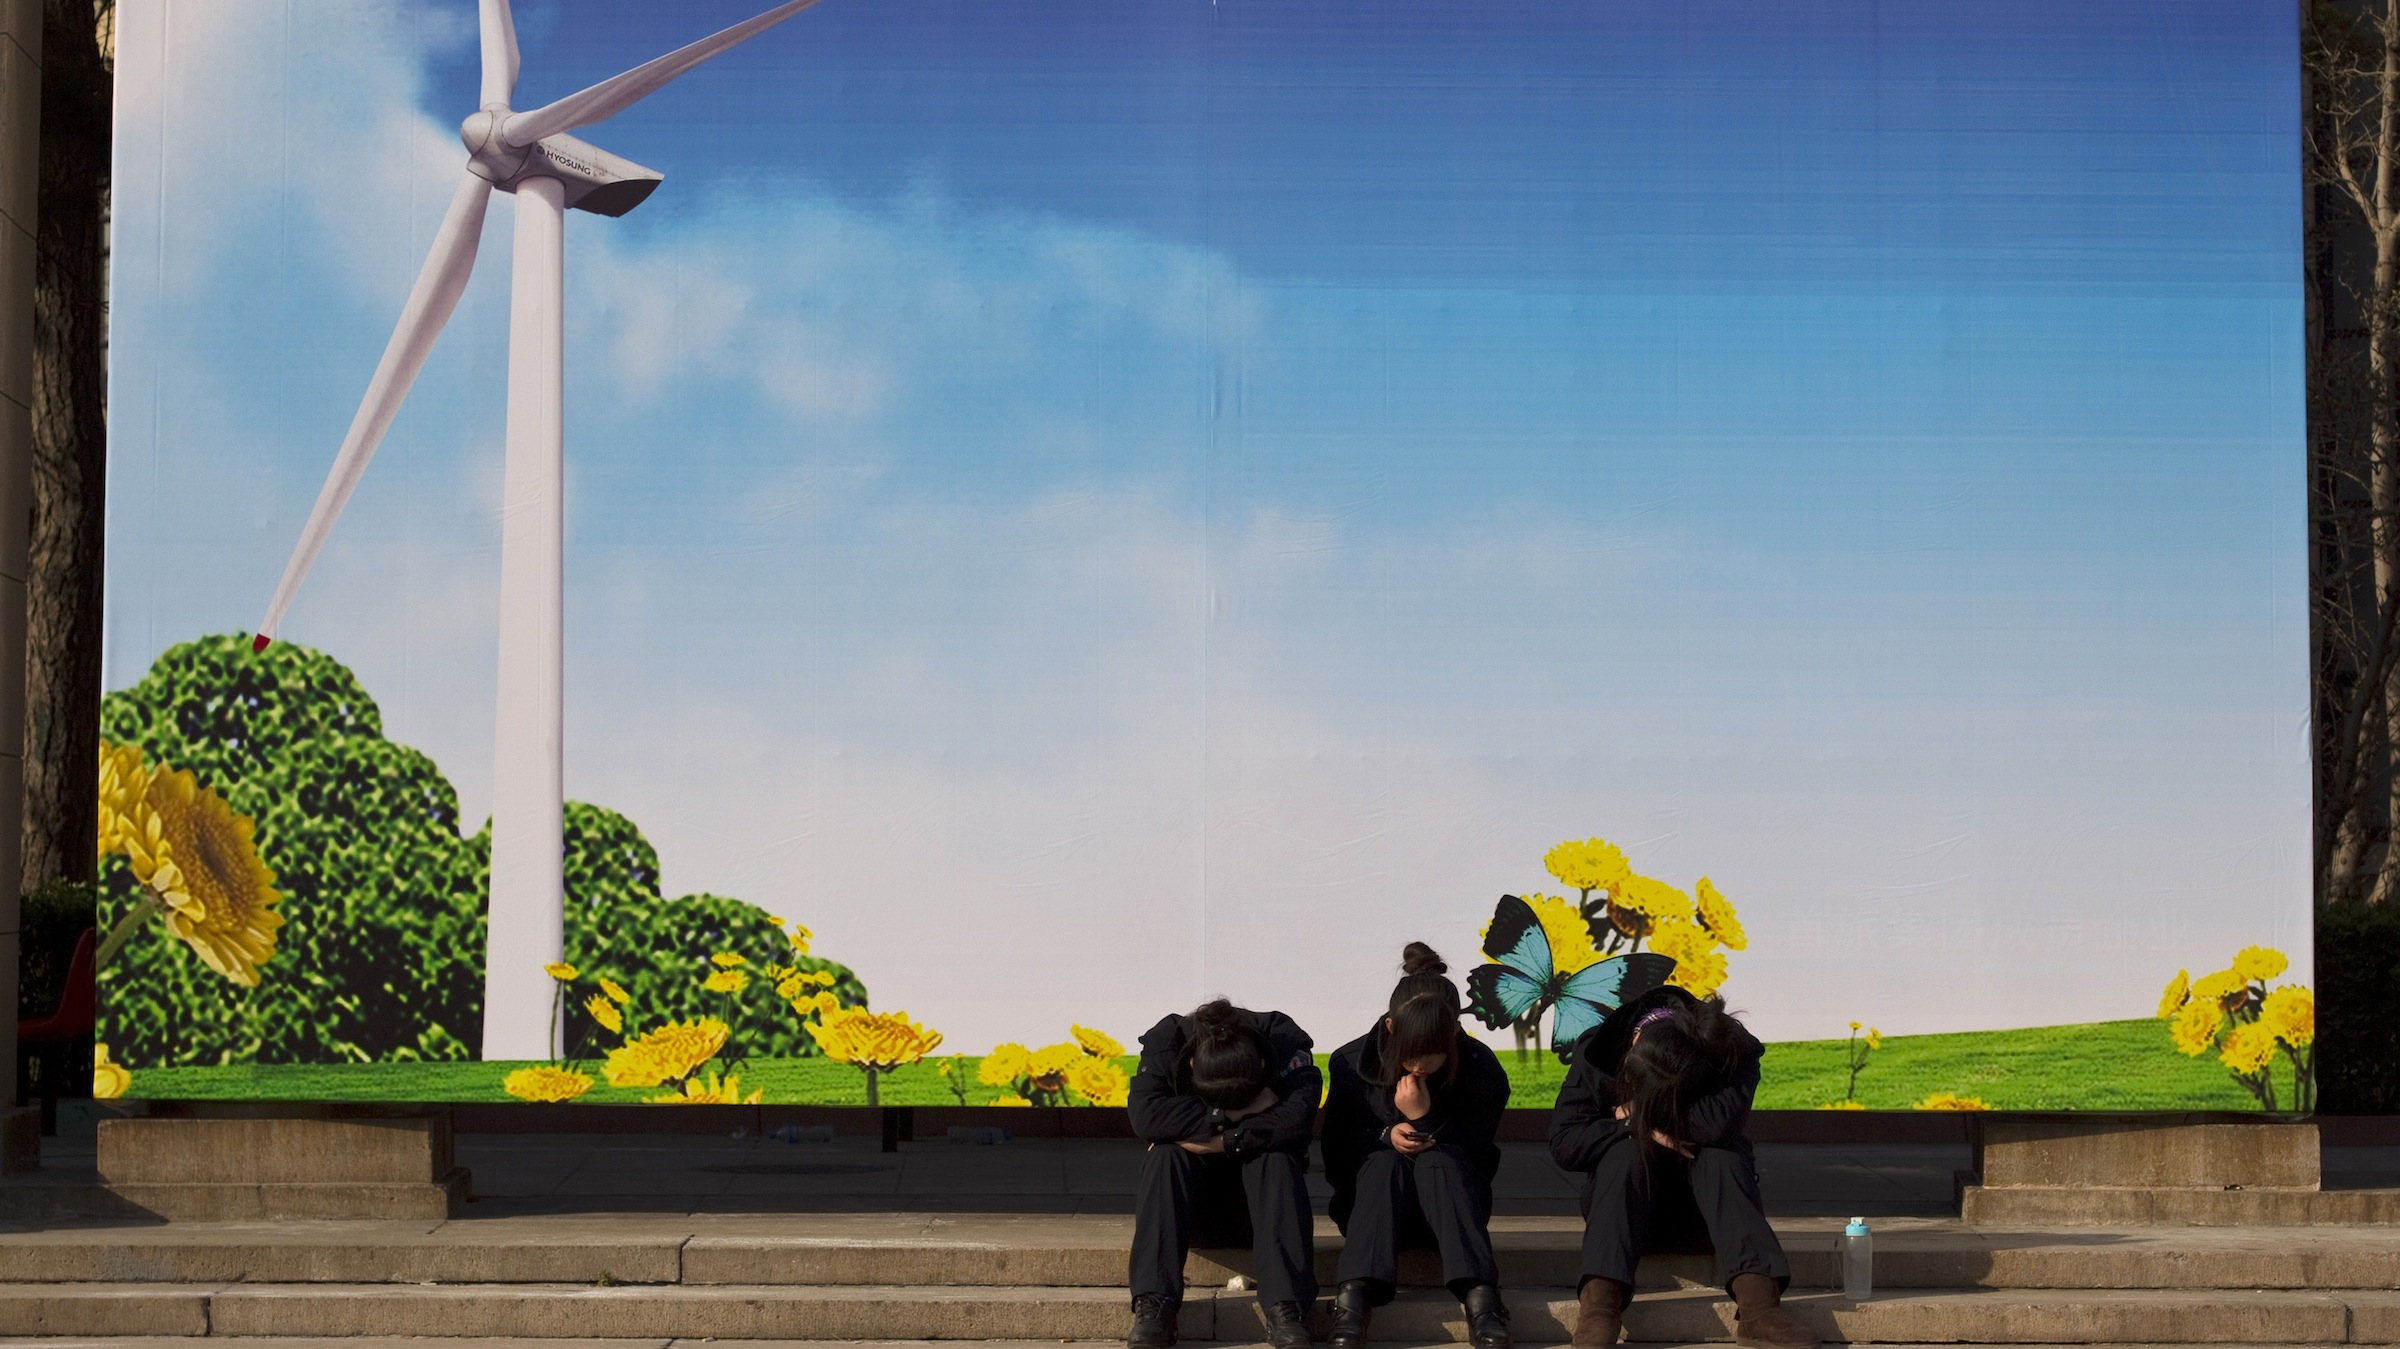 Workers rest on steps near an advertisment board showing a wind turbine outside the venue of a green industry expo in Beijing, China, Thursday, Nov. 25, 2010. (AP Photo/Alexander F. Yuan)